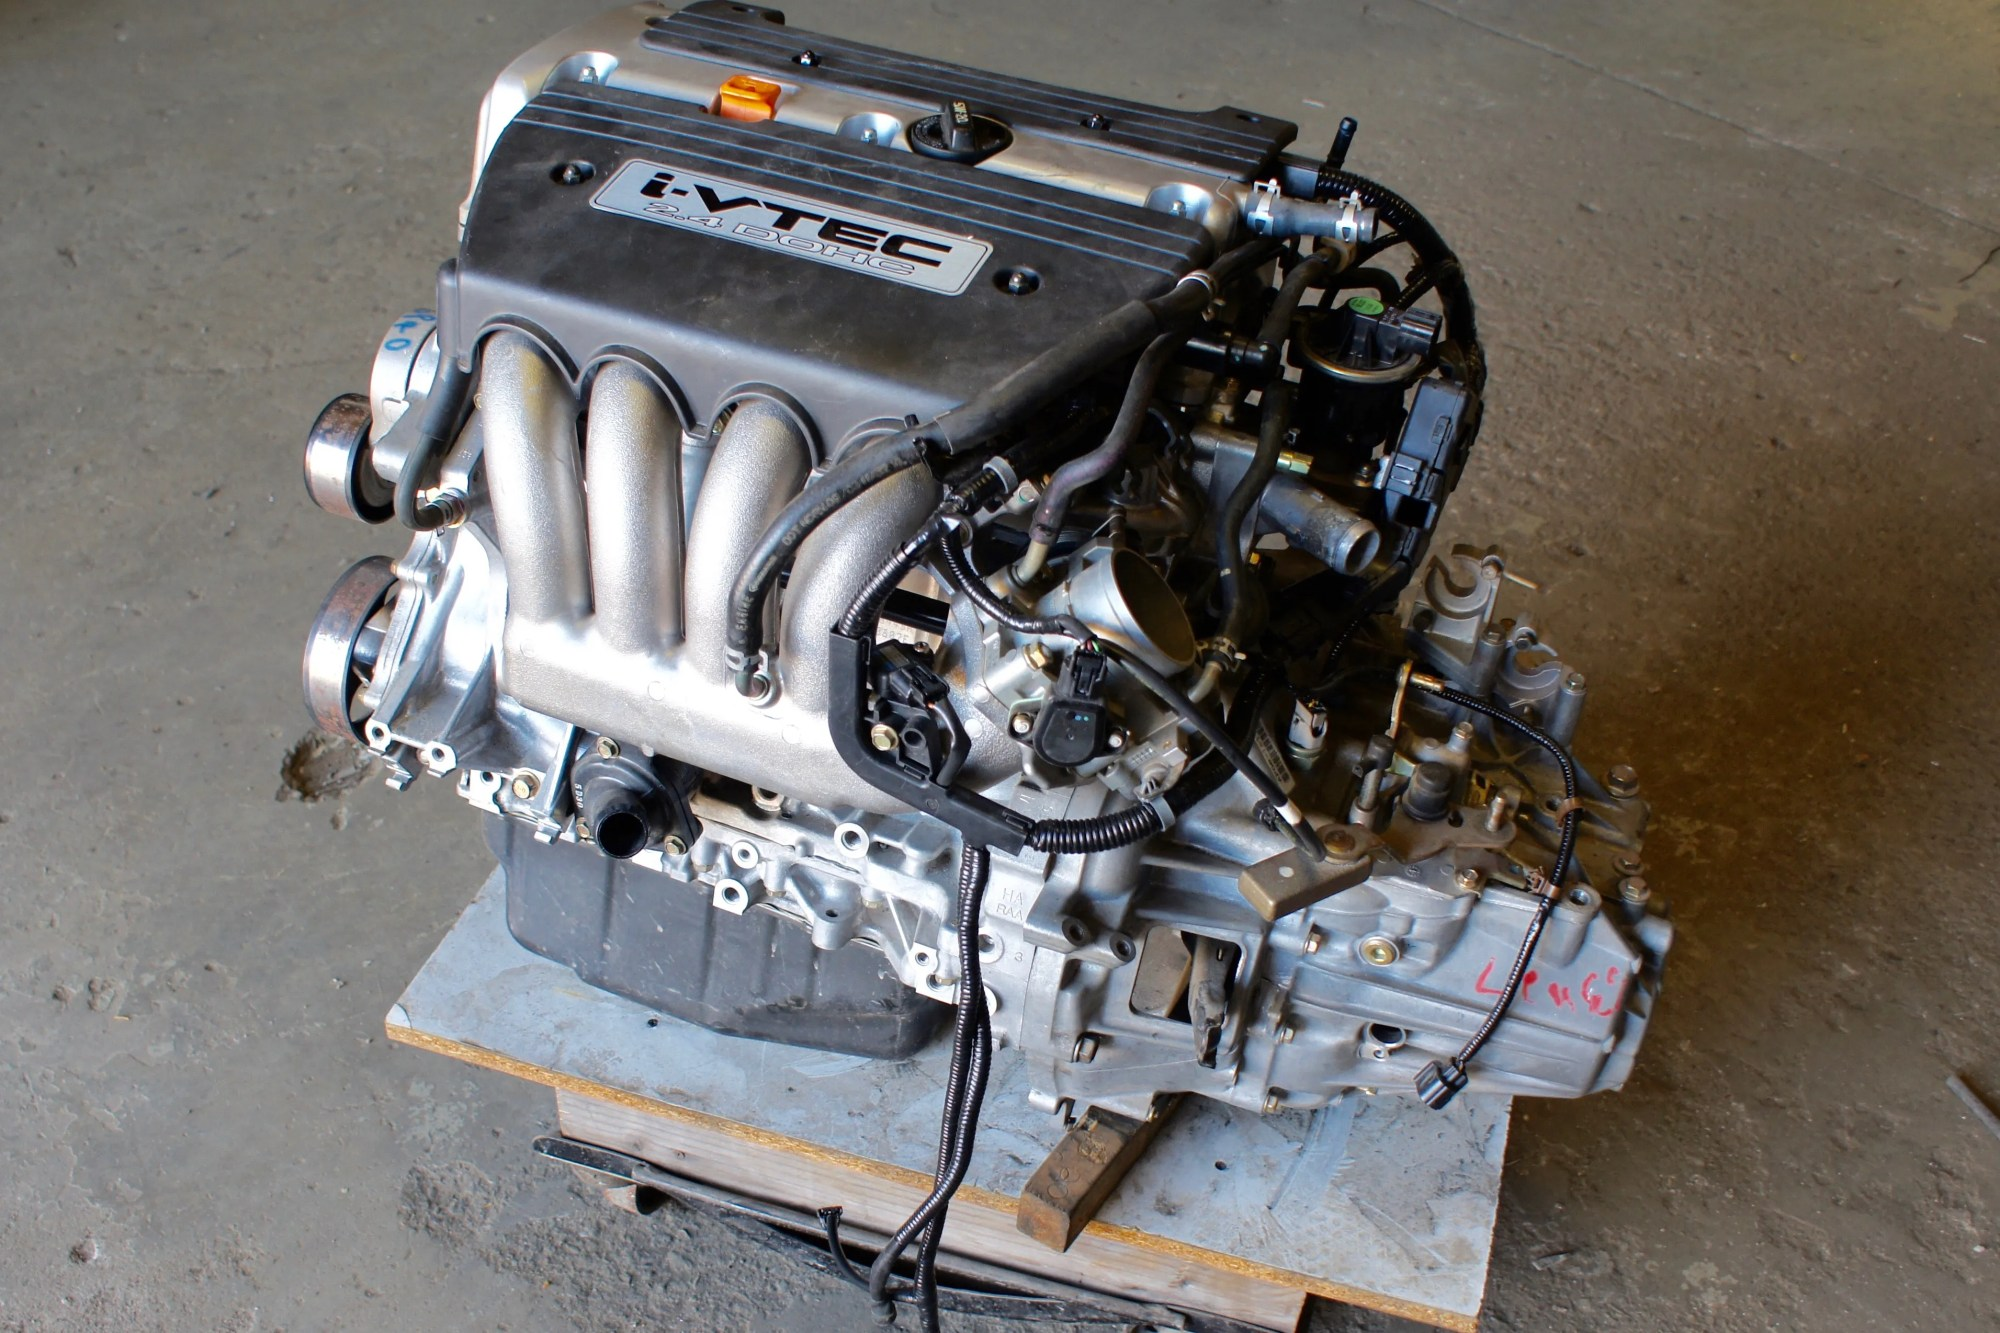 hight resolution of budget k series engine swap the parts list vtec academy system diagram also 2004 honda accord engine on k24a4 engine diagram